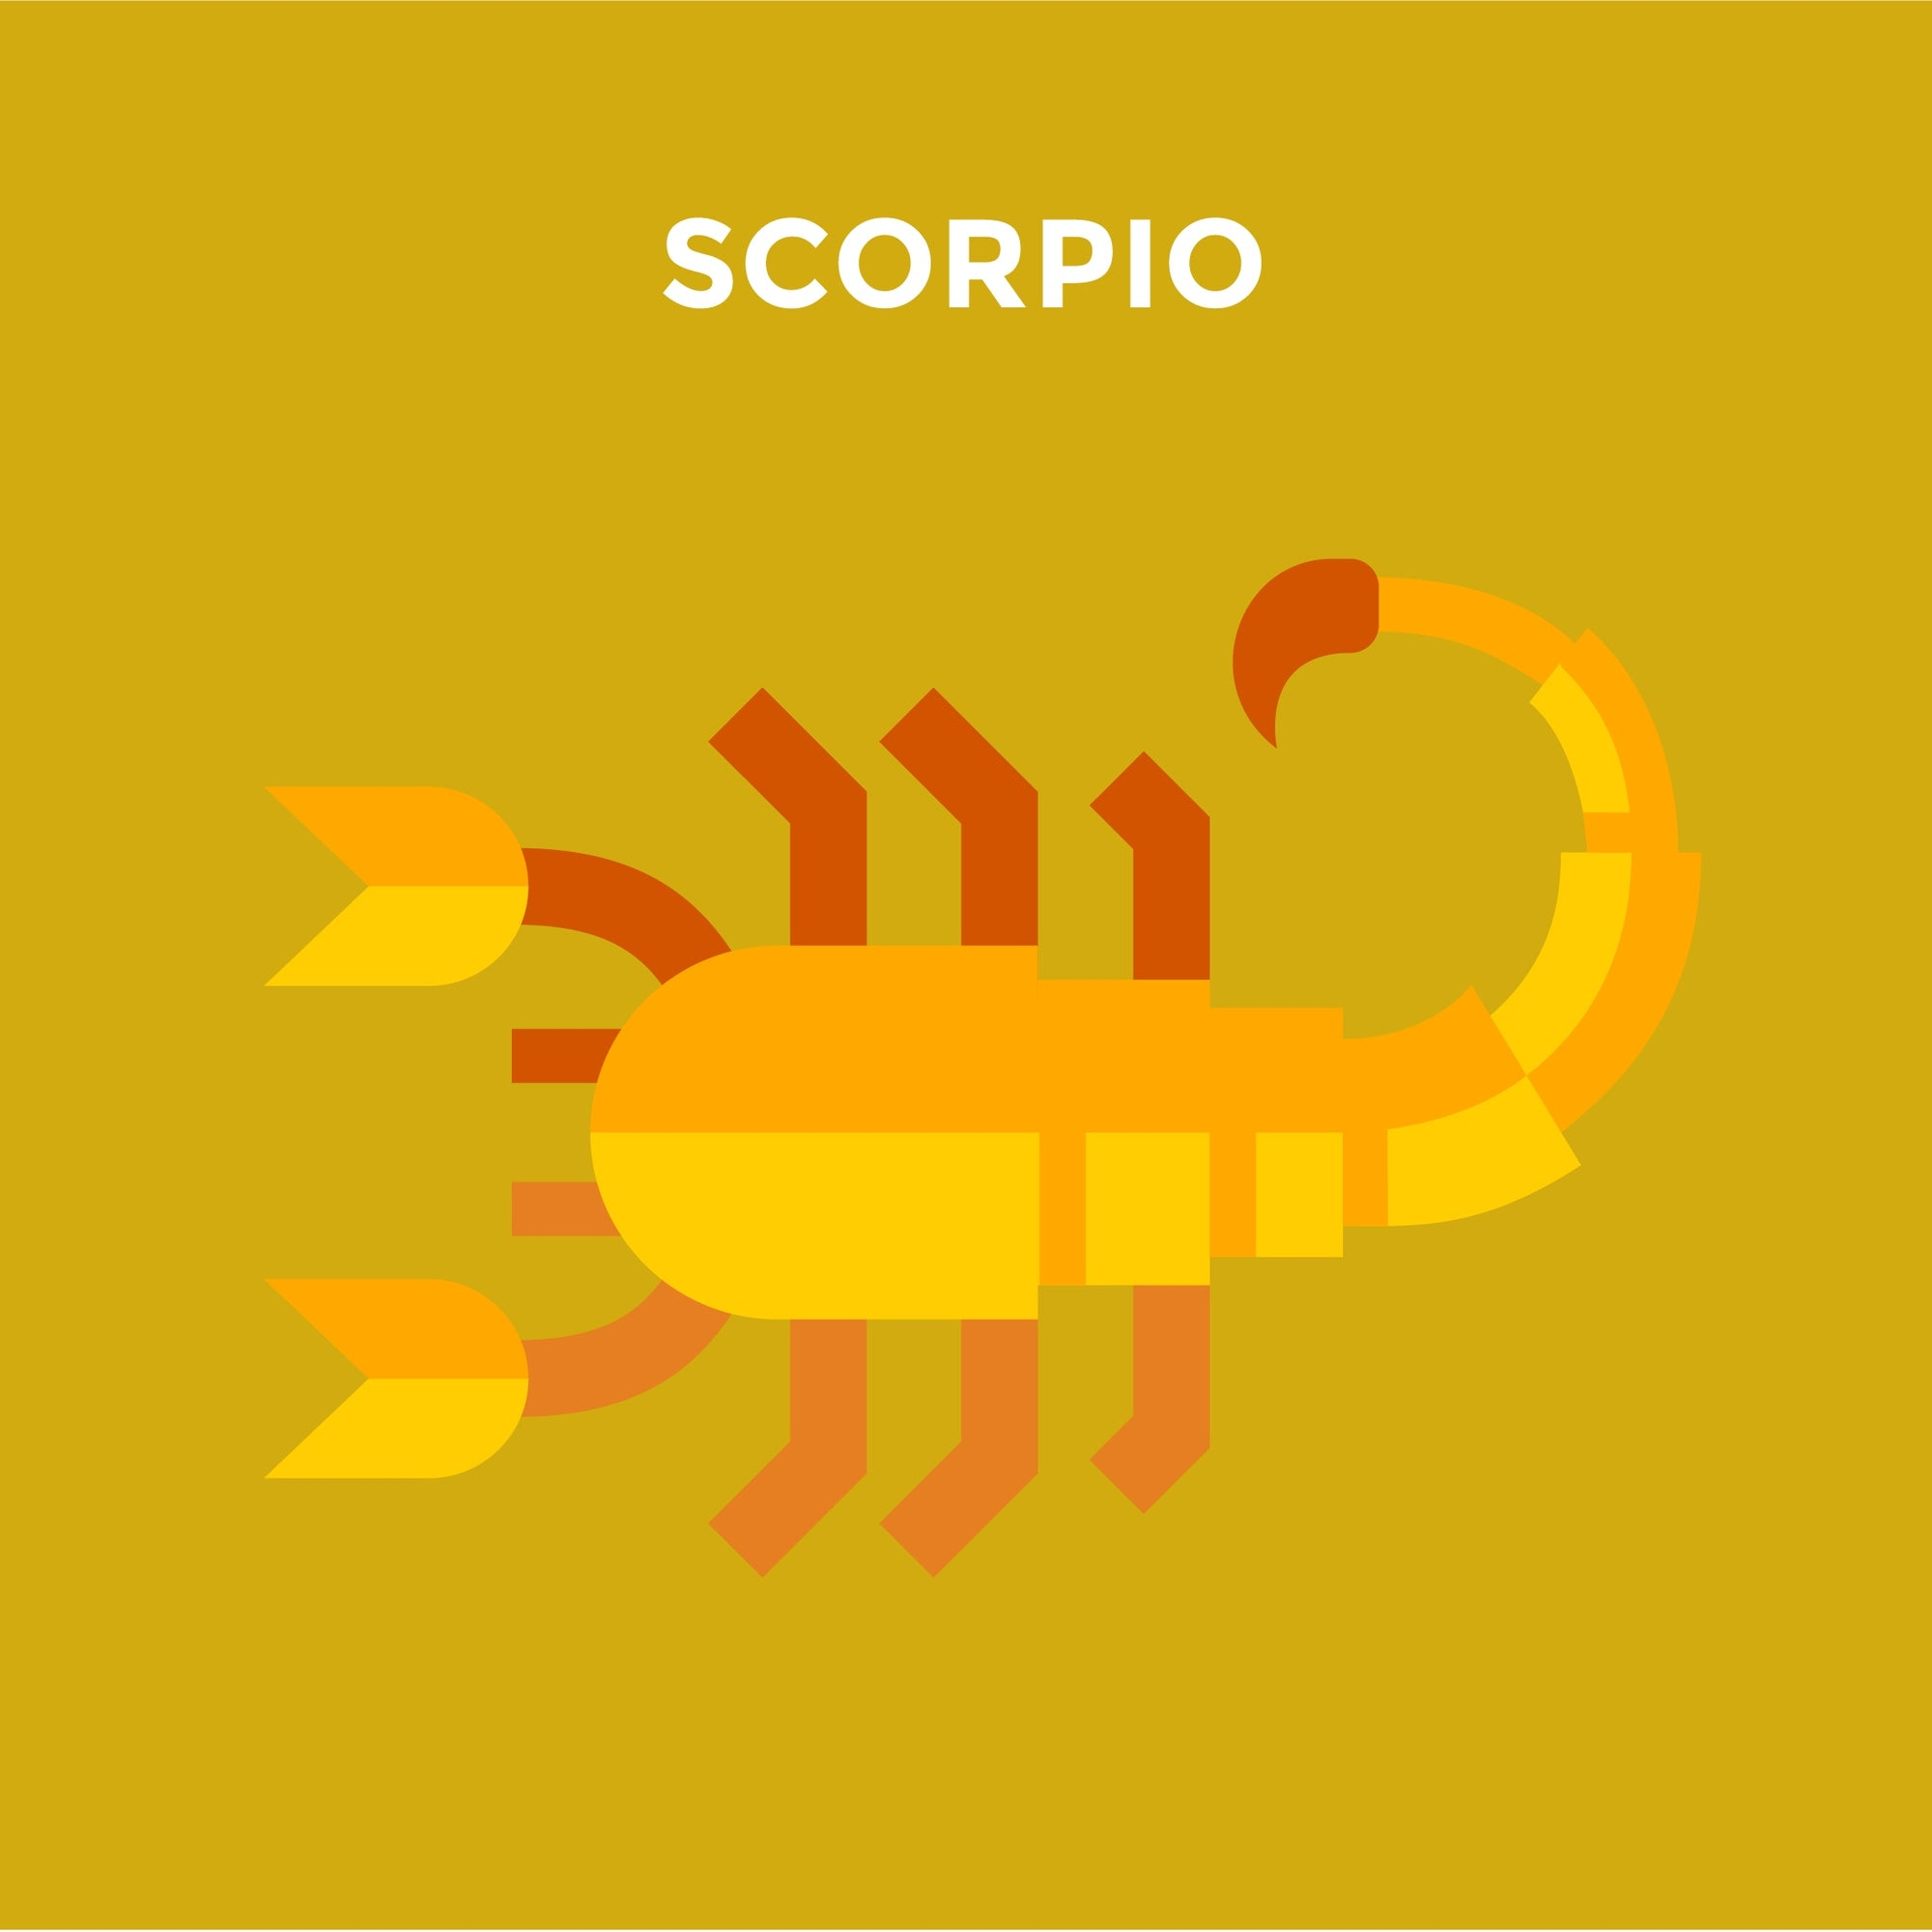 animation of scorpion with caption Scorpio